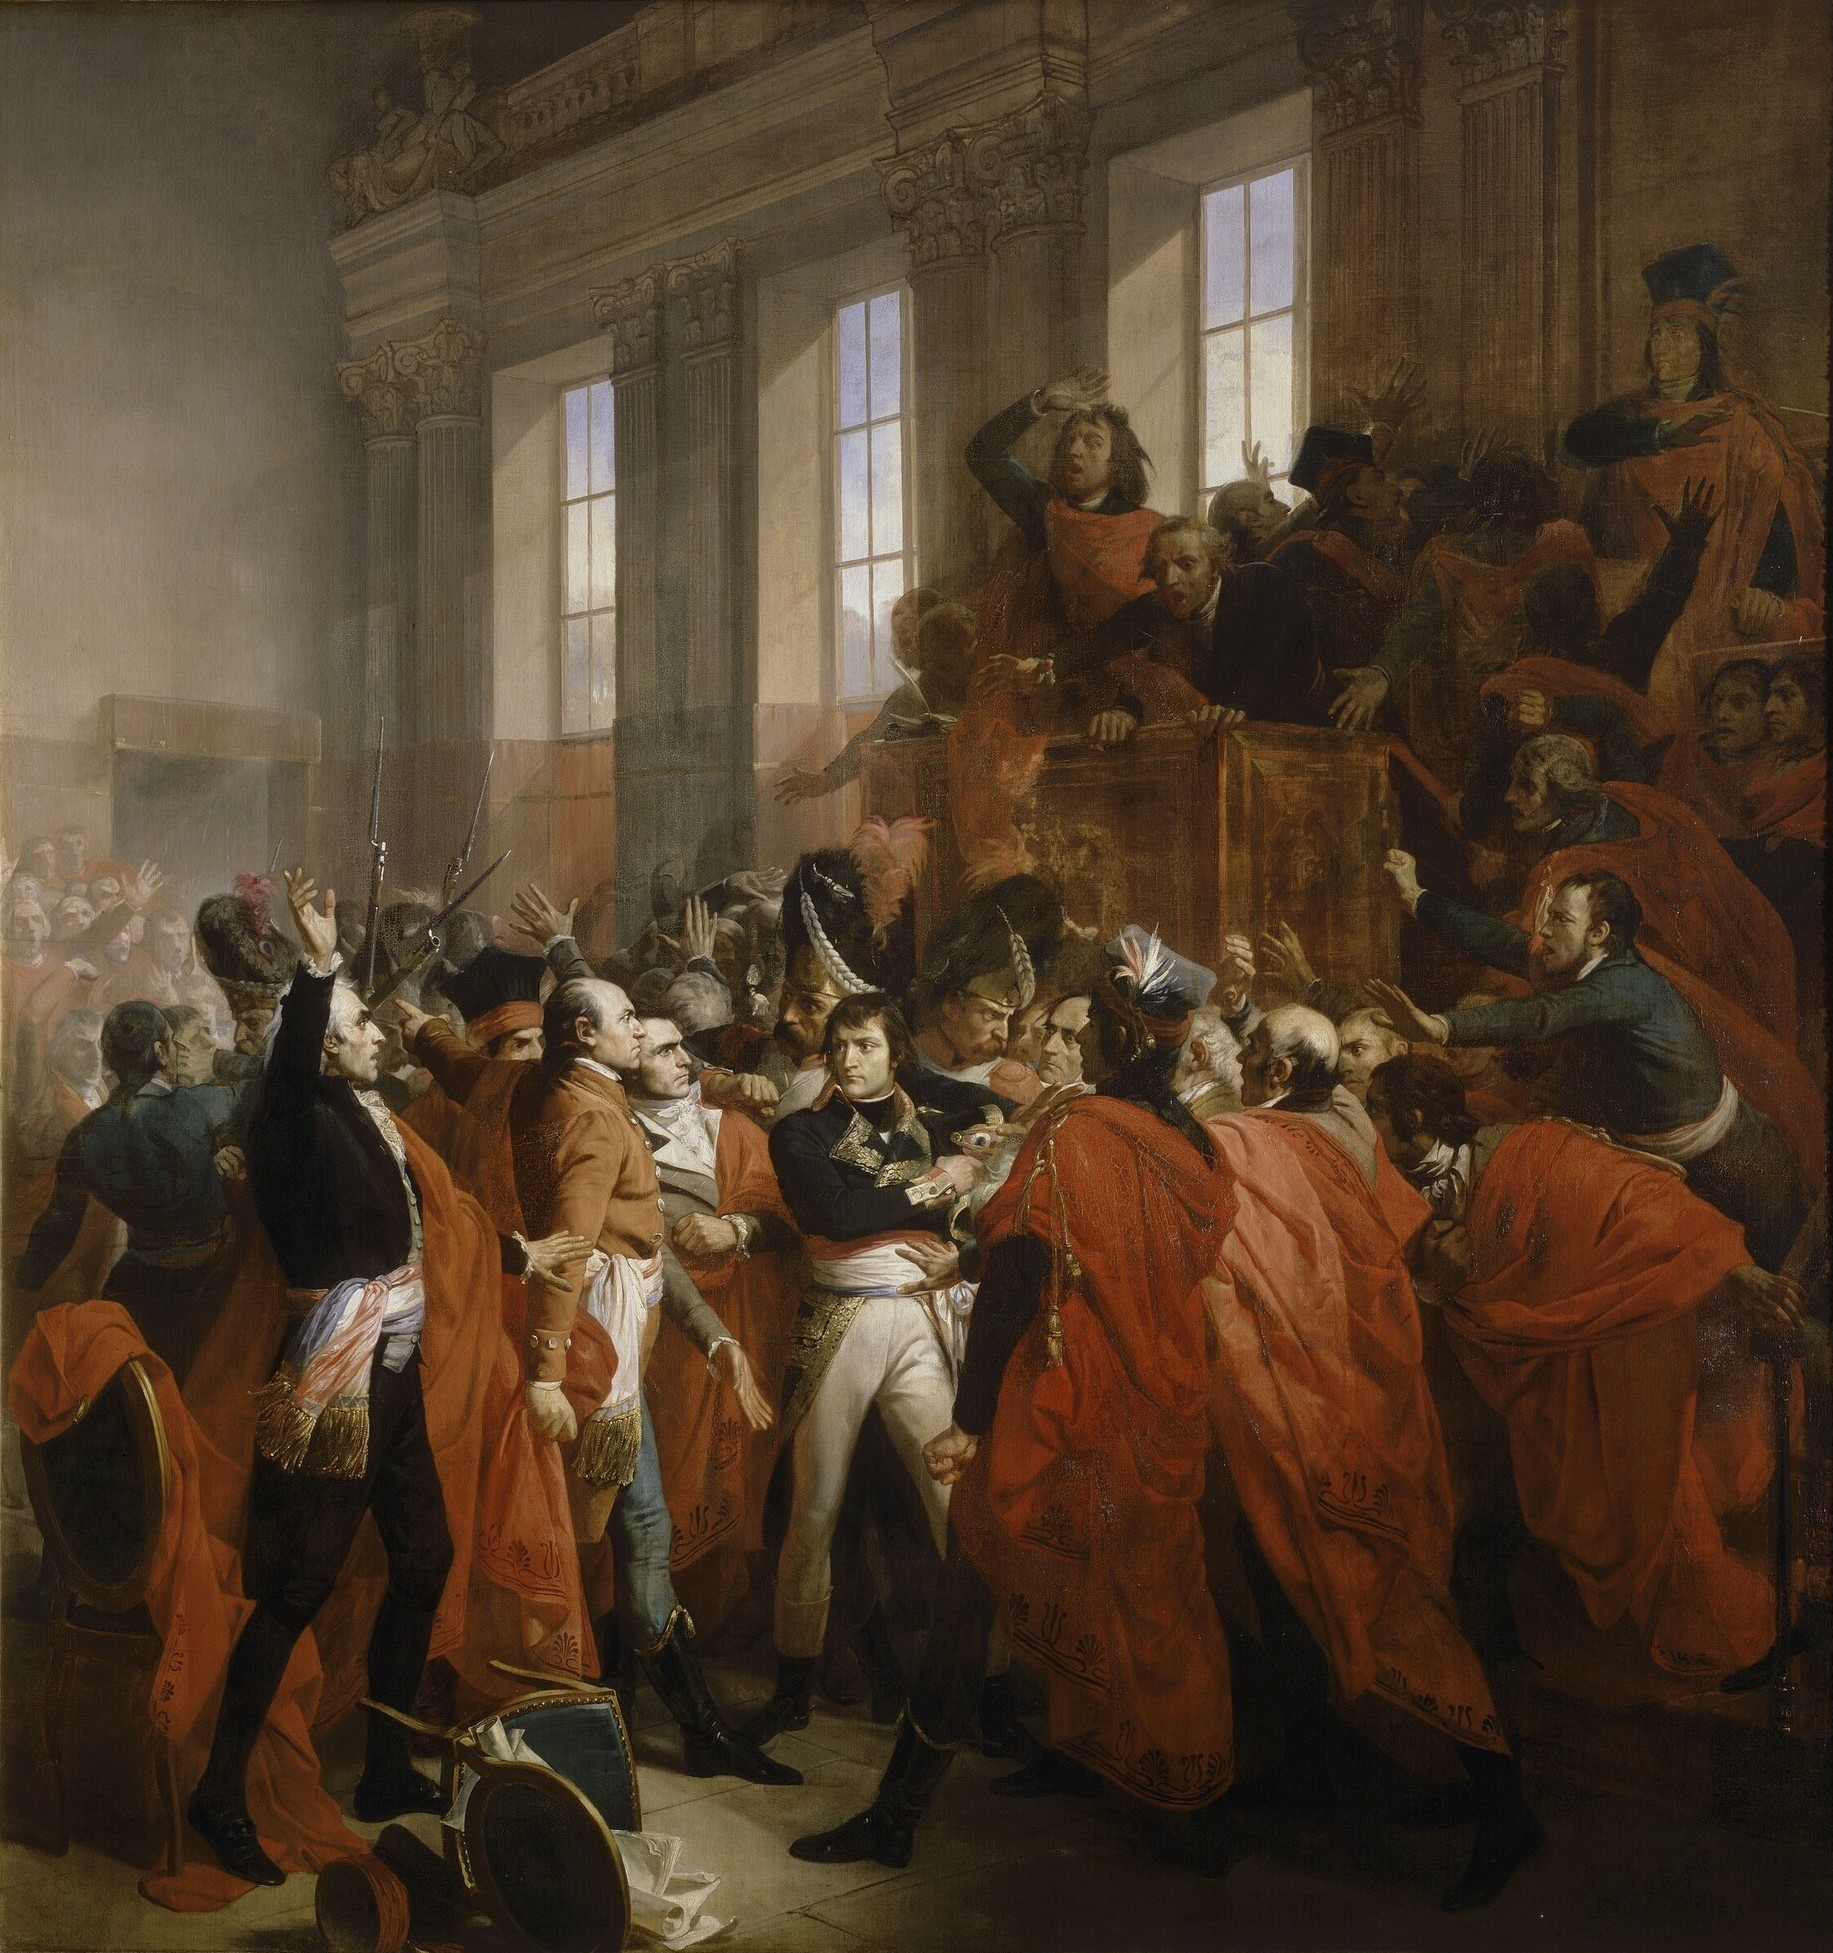 http://upload.wikimedia.org/wikipedia/commons/4/44/Bouchot_-_Le_general_Bonaparte_au_Conseil_des_Cinq-Cents.jpg